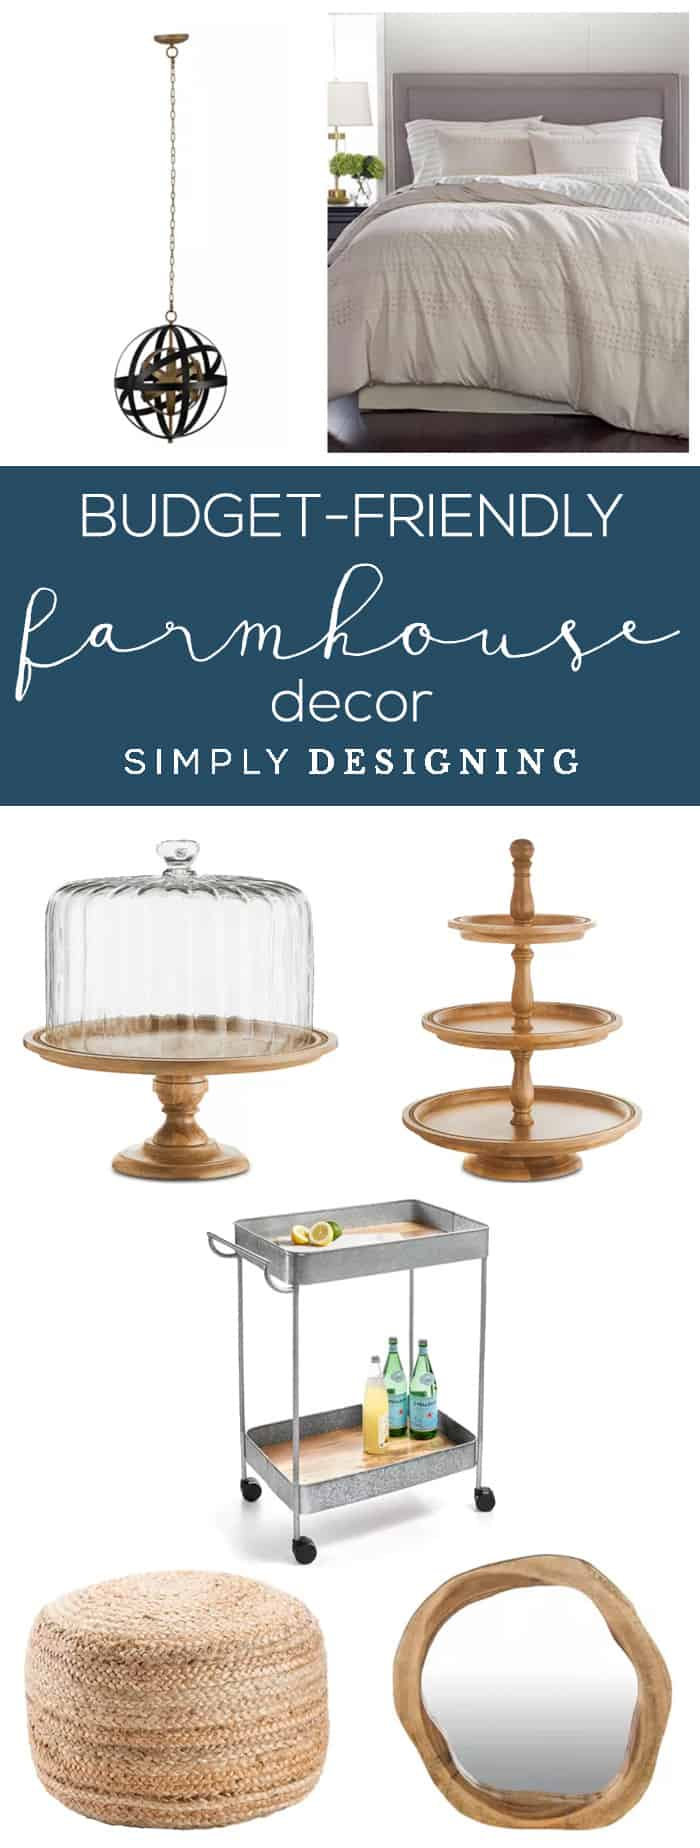 Budget Friendly Farmhouse Decor - Here are a few Budget Friendly Farmhouse Decor ideas to help you get a beautiful farmhouse look without breaking your budget